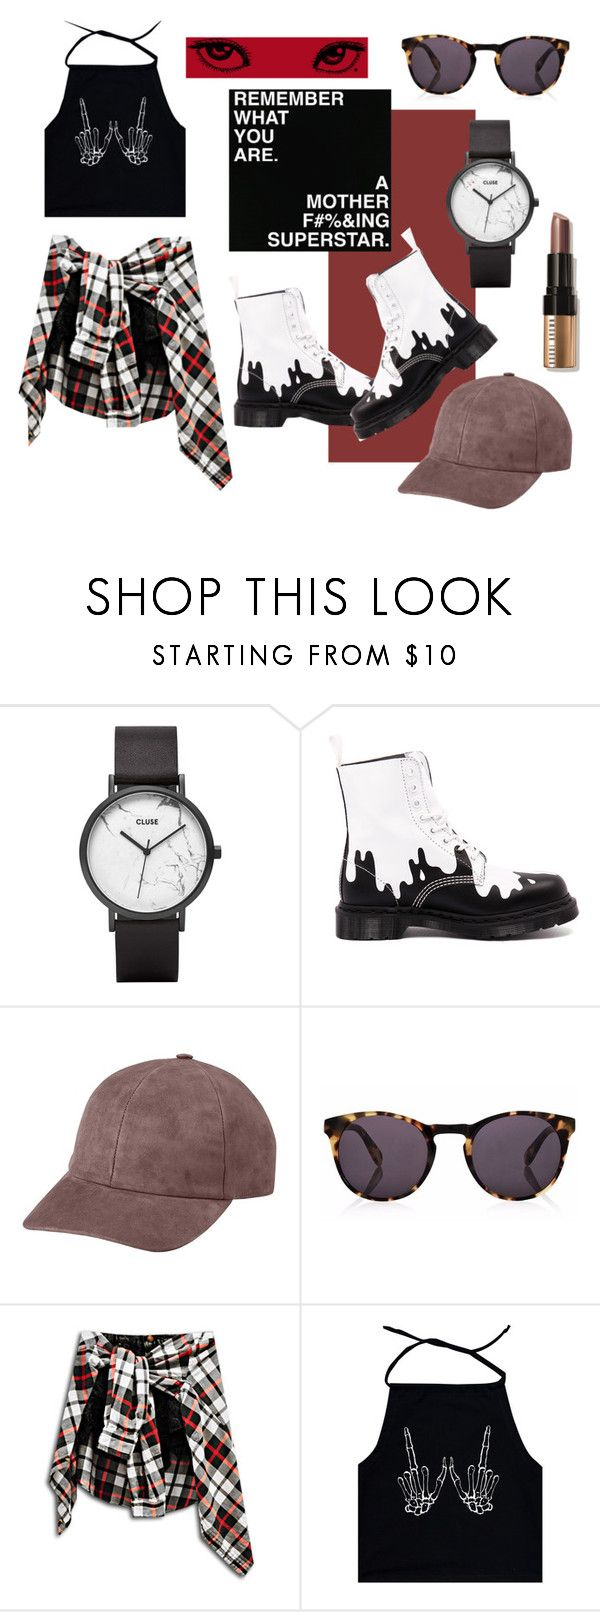 """""""Hell Yes!"""" by blackyogurtgirl ❤ liked on Polyvore featuring Ezgi Cinar, CLUSE, Dr. Martens, Vianel, Finlay & Co. and Bobbi Brown Cosmetics"""